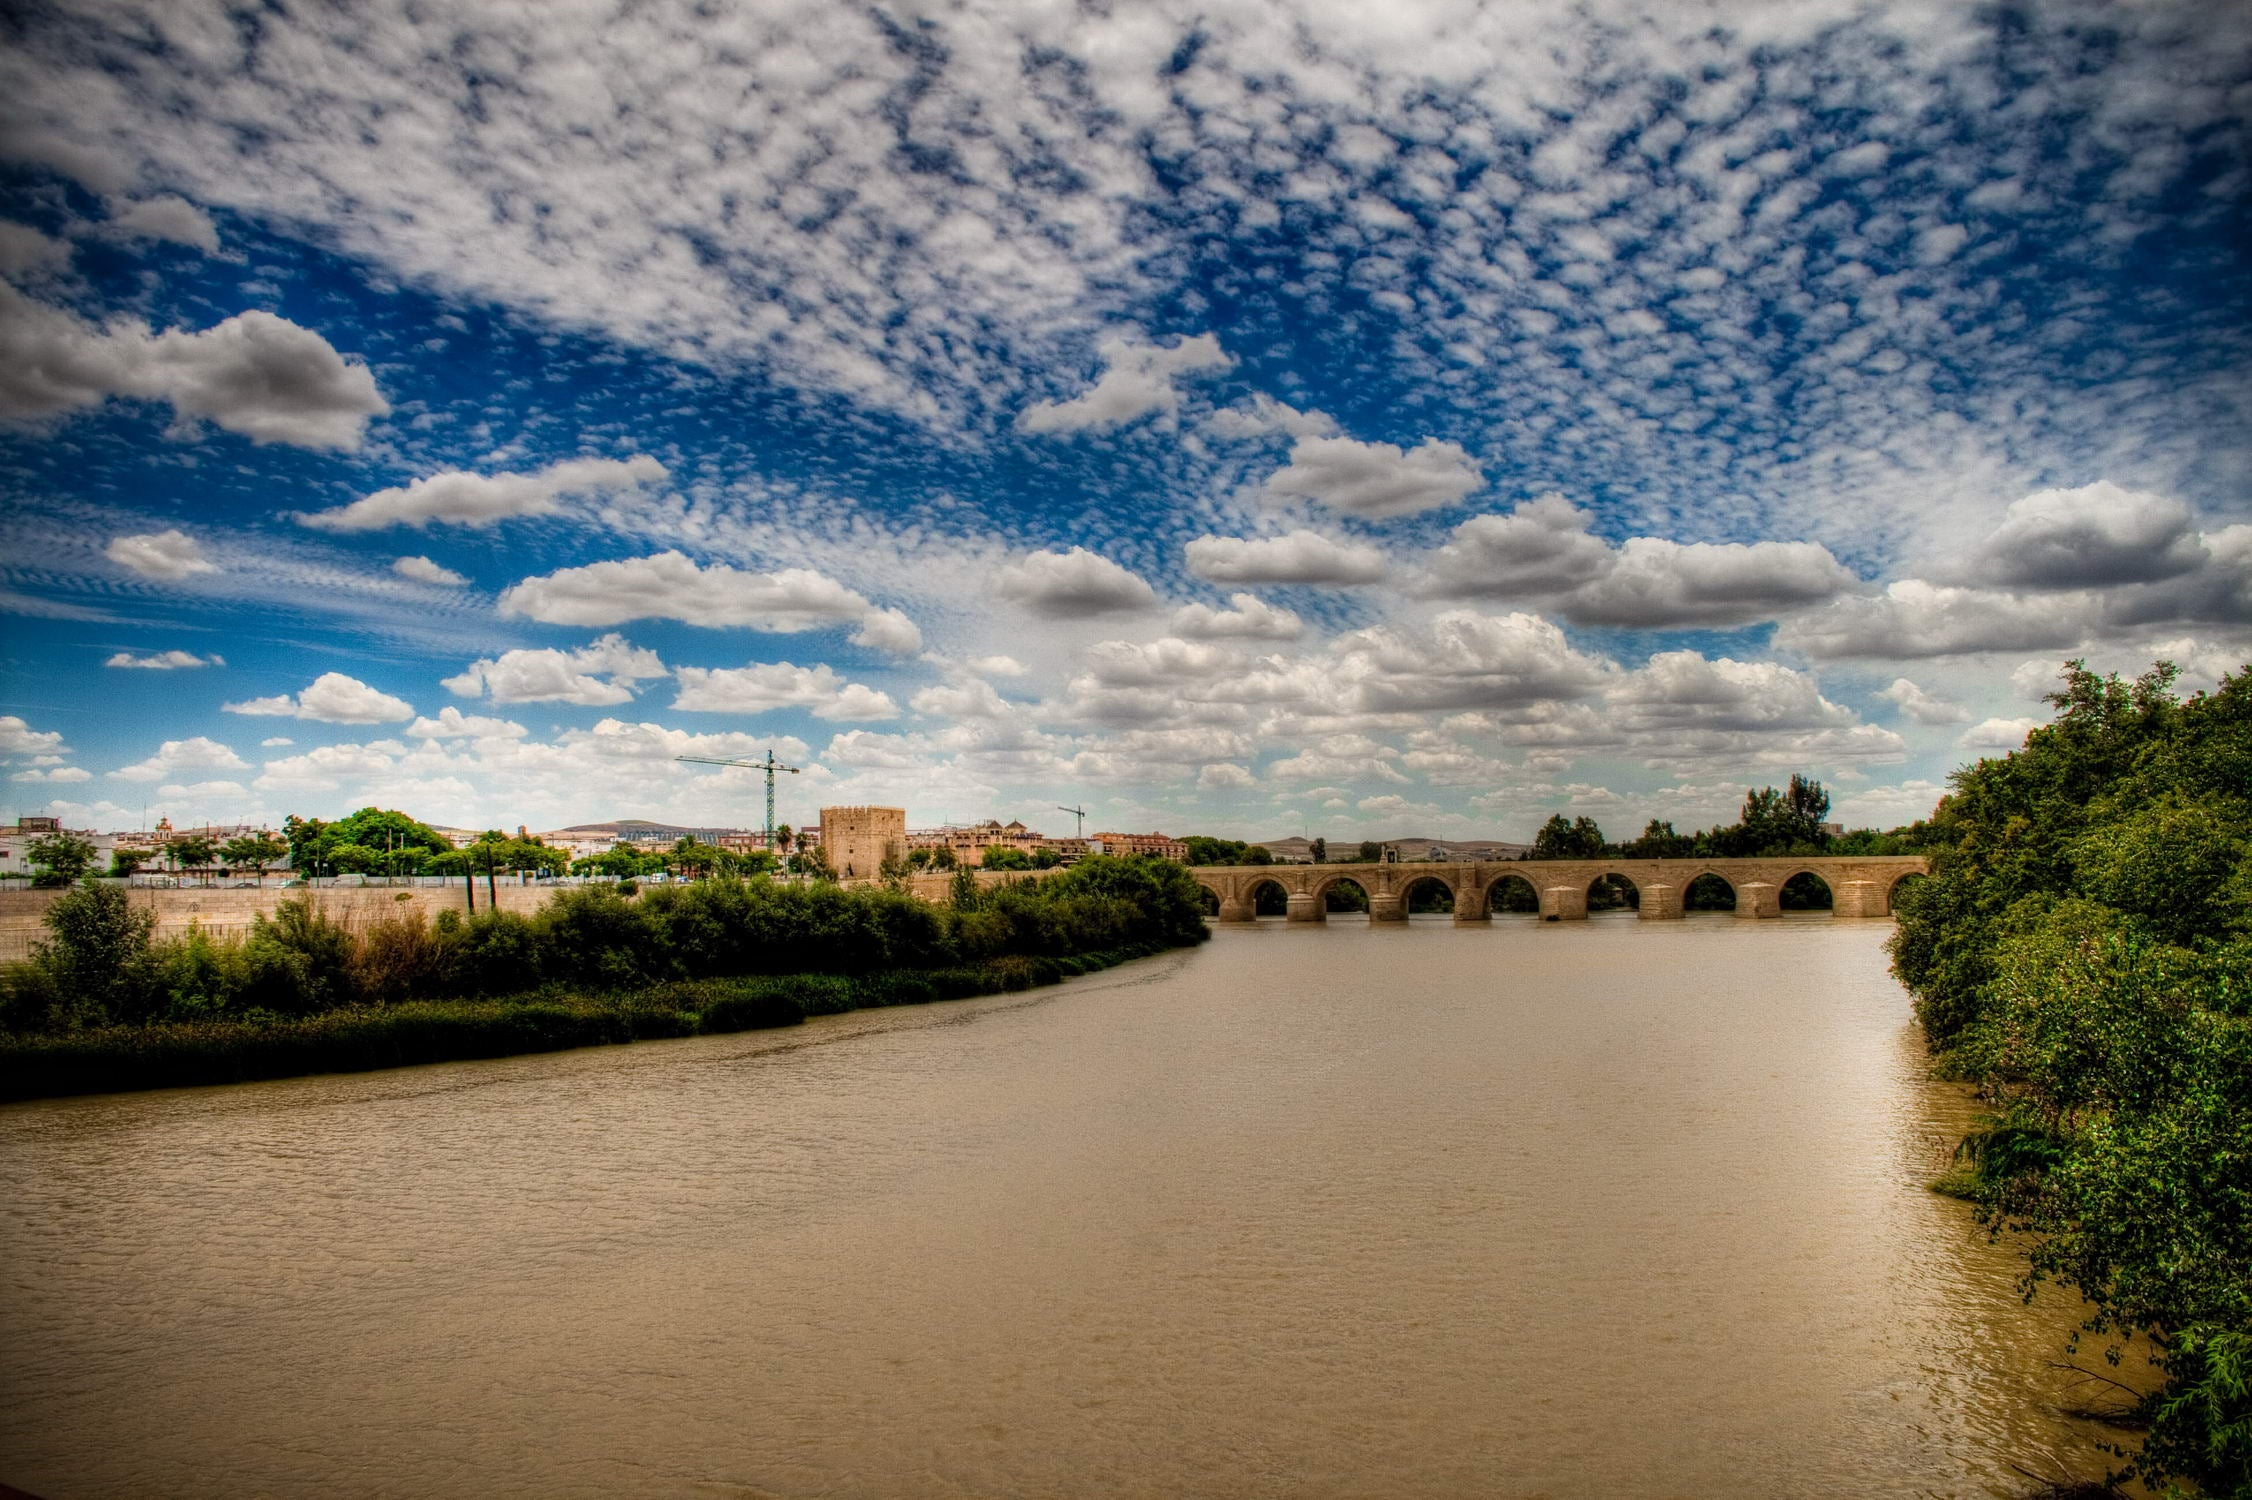 Sky in Roman Bridge of Córdoba